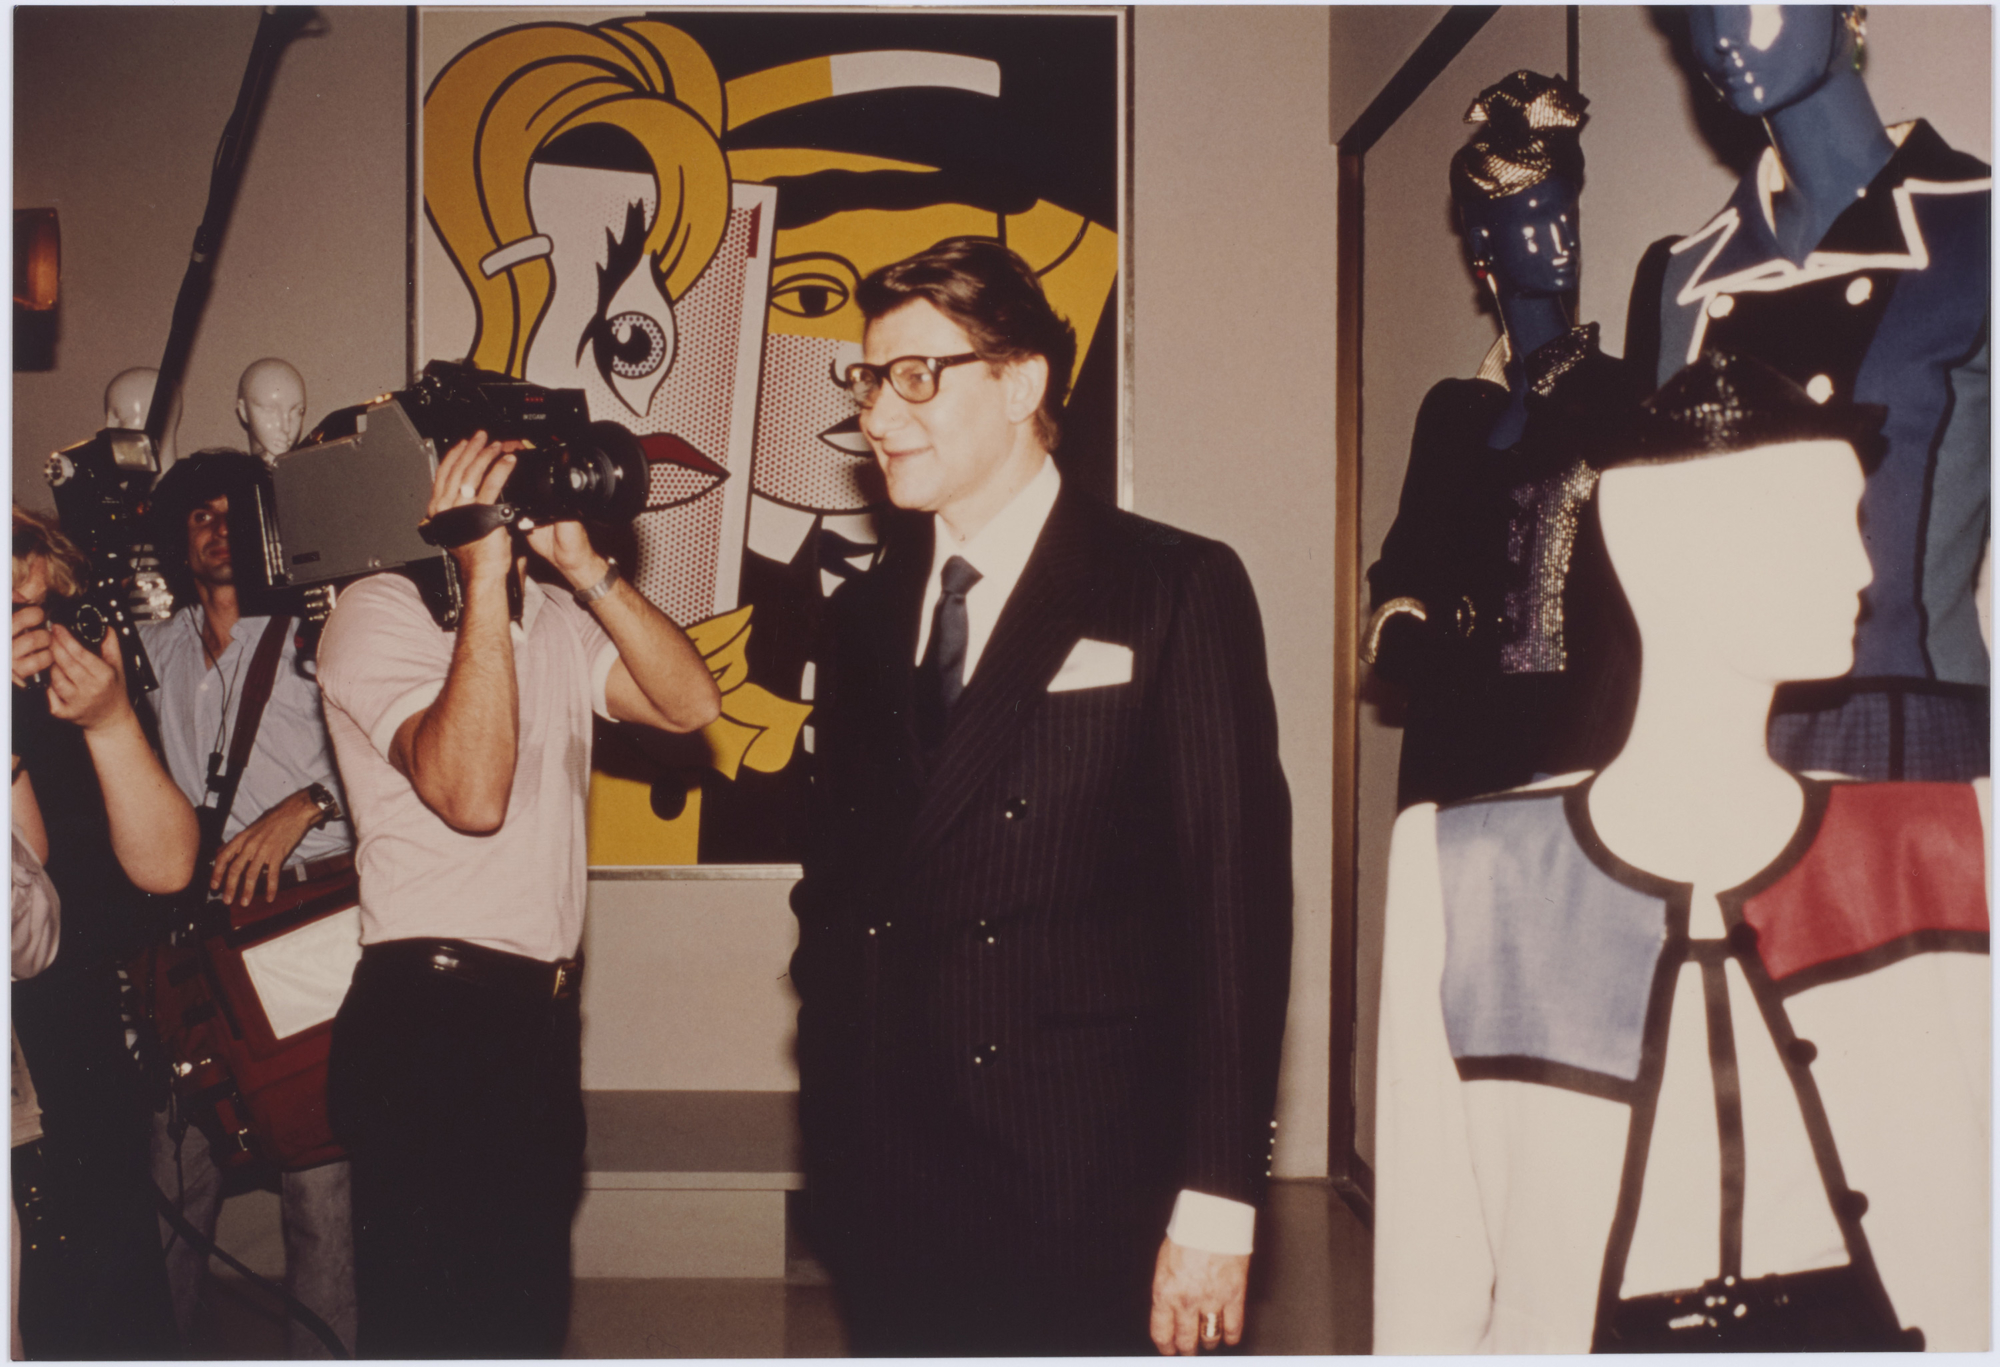 1db40b26db2 Yves Saint Laurent at the press conference for his first retrospective 25  Years of Design, Metropolitan Museum, New York, December 1983.